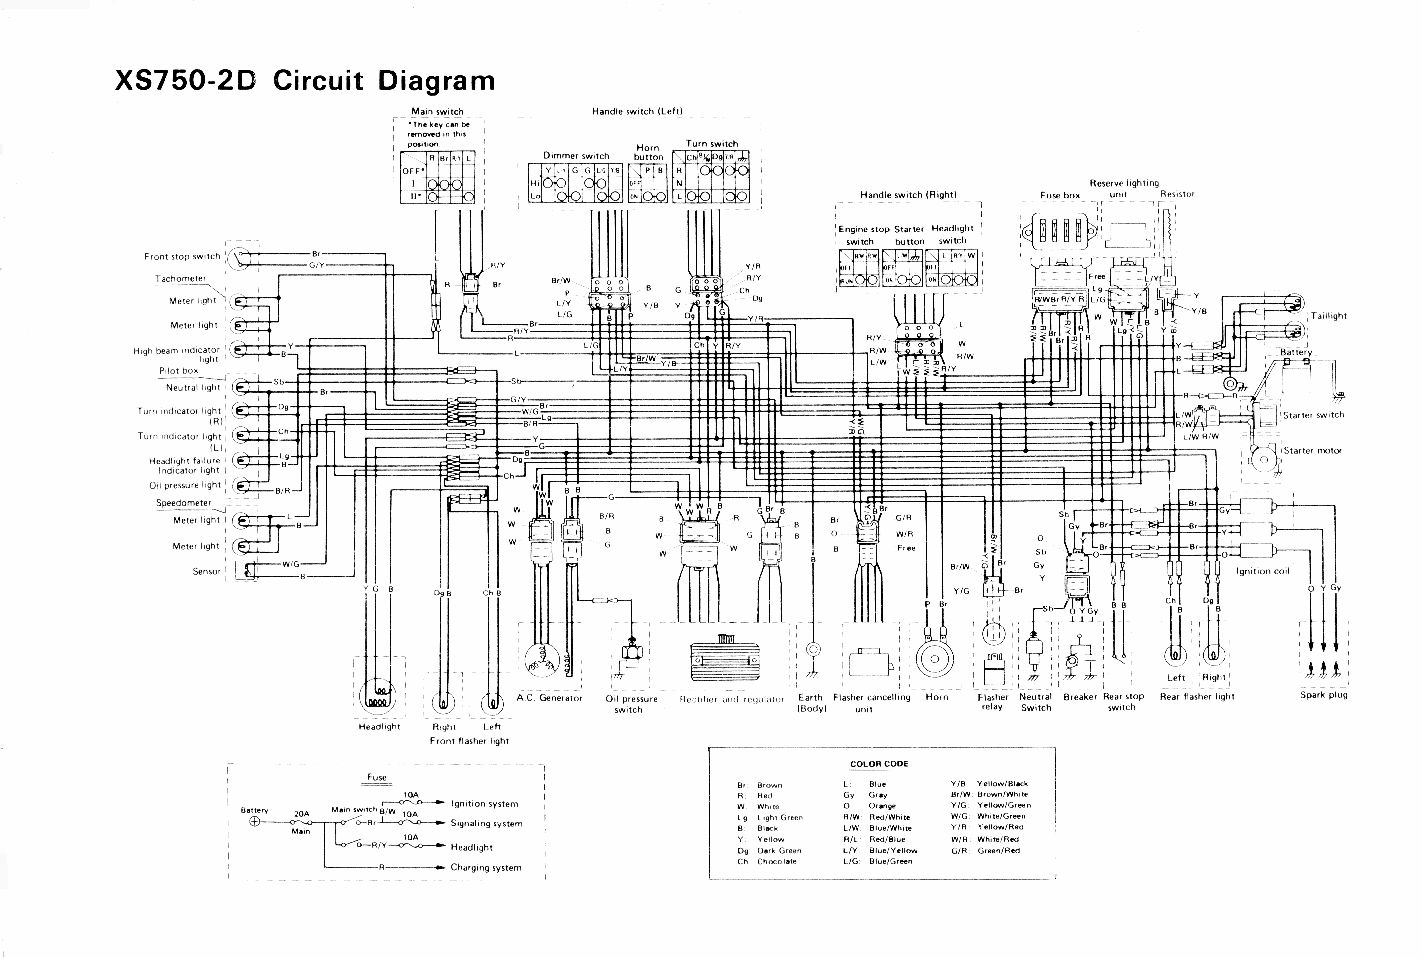 Xs850 Wiring Diagram Diagrams 1980 Kz1000 Color Yamaha Experts Of U2022 Rh Evilcloud Co Uk Xs650 For Chopper